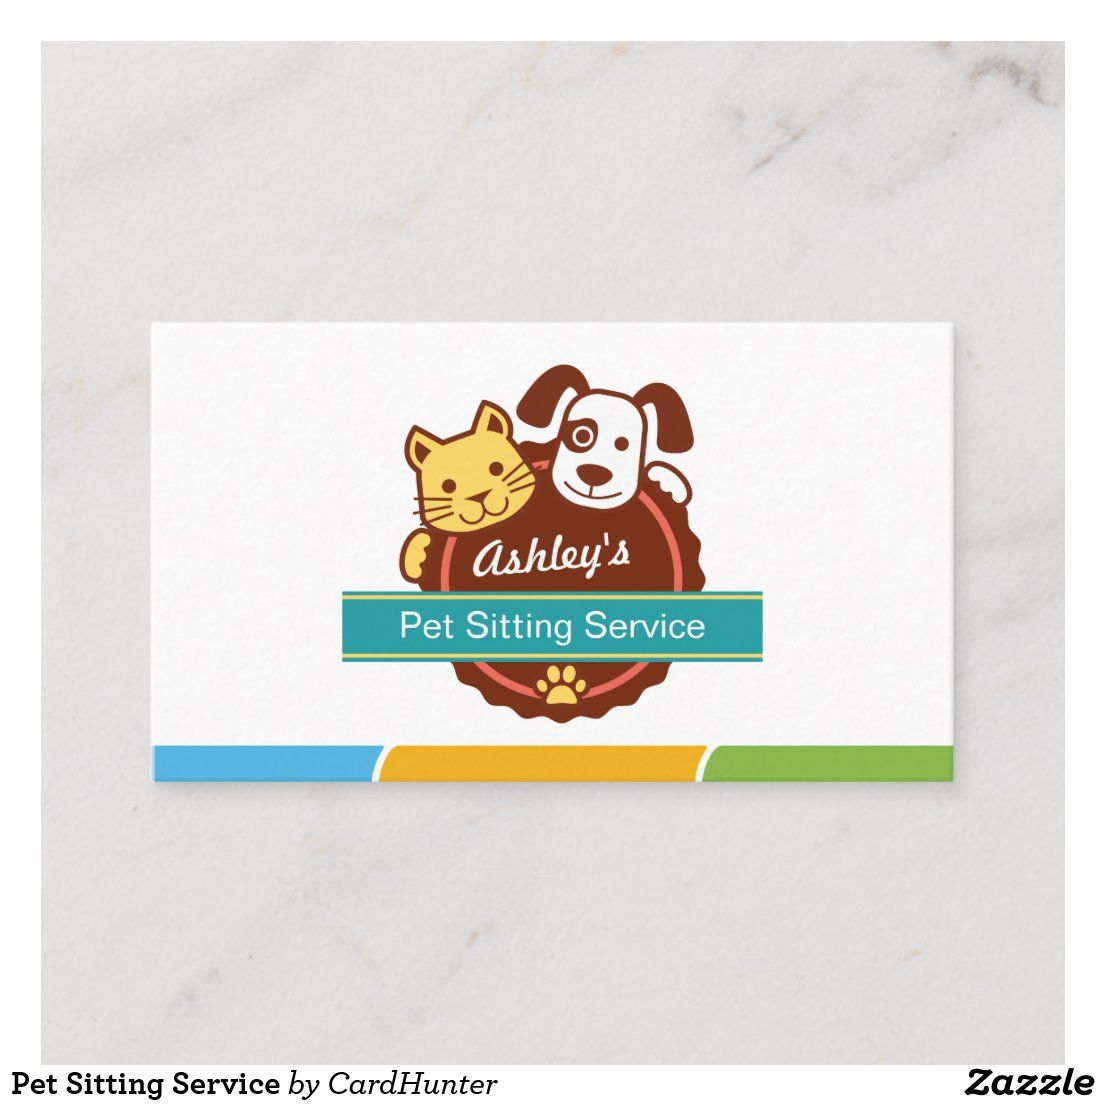 Pet Sitting Service Business Card in 2020